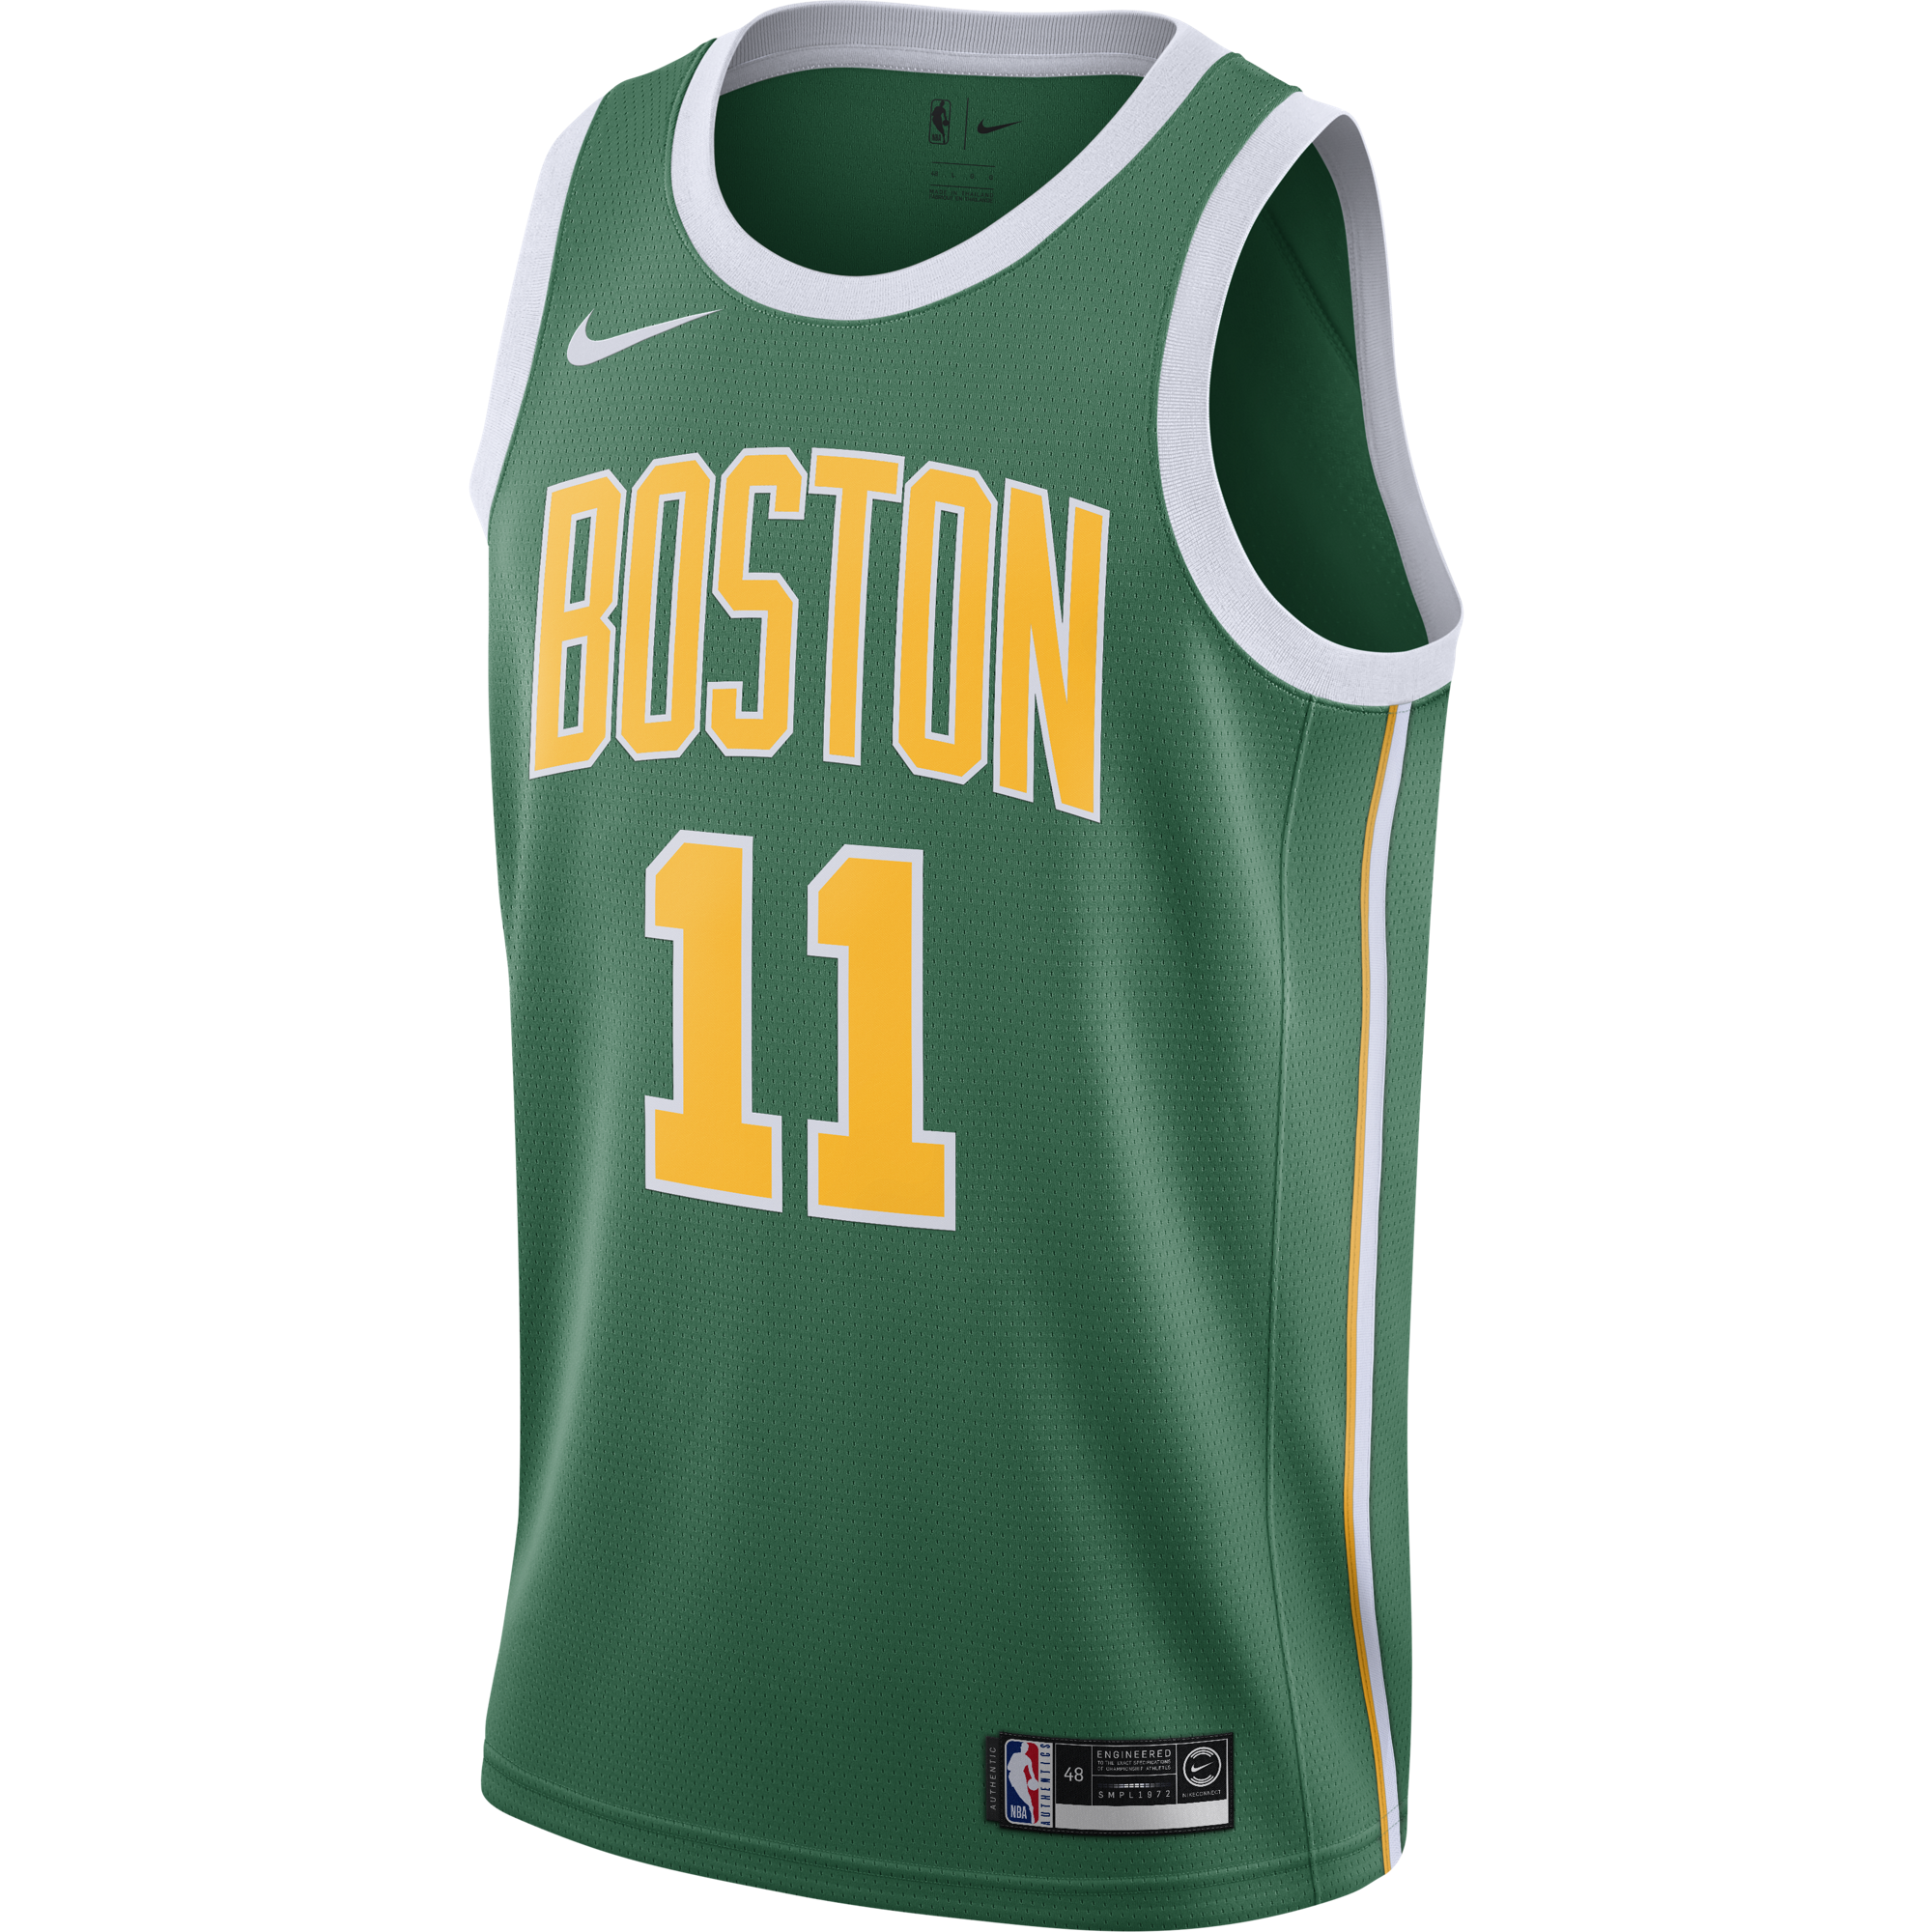 f6c472ca93f0 Kyrie Irving Nike Swingman Jersey - Earned Edition for  109.99 Fanatics